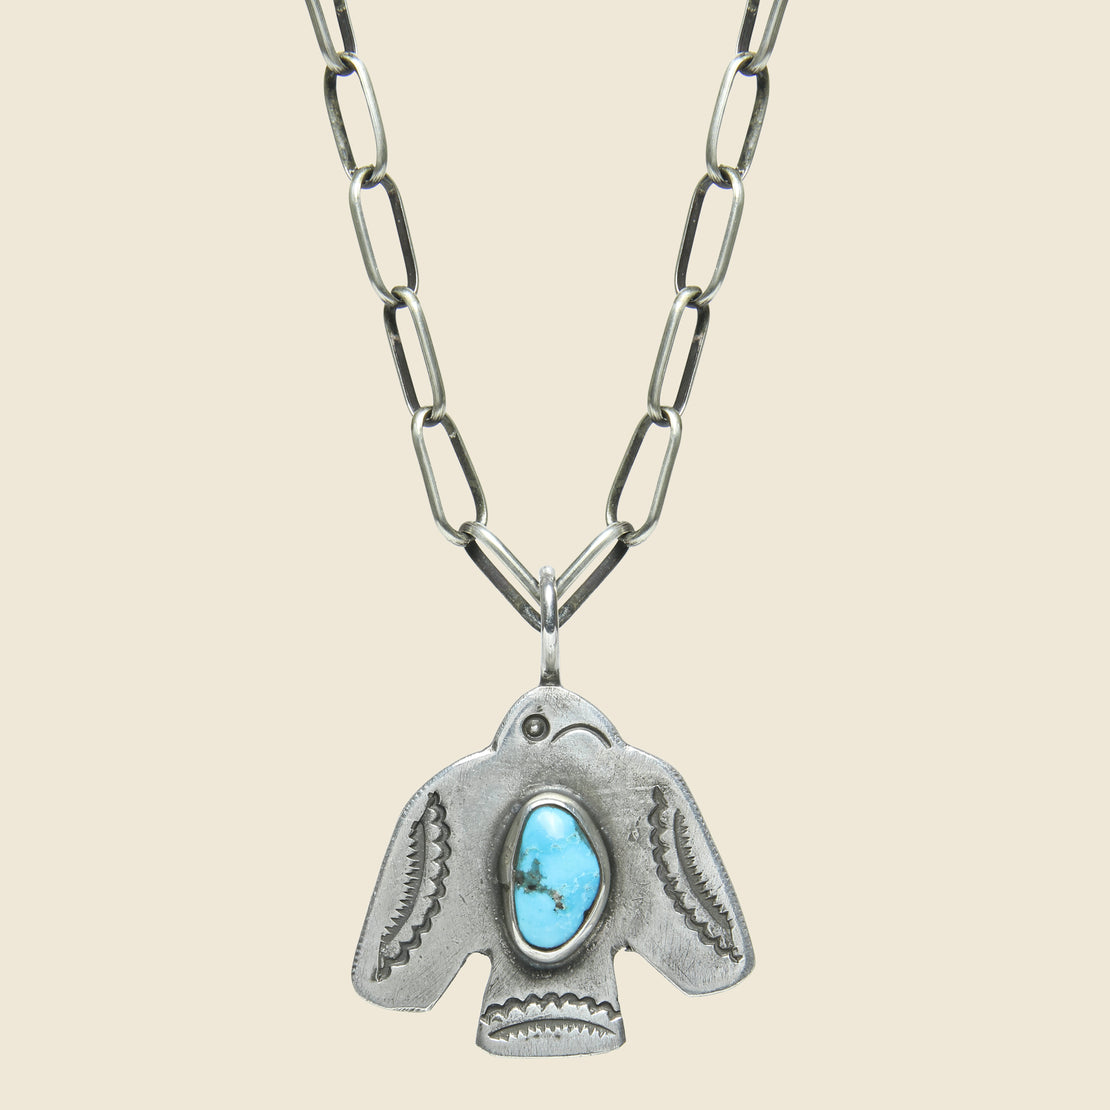 Smith Bros. Trading Co. Scallop Tail Thunderbird Pendant Necklace - Sterling/Turquoise